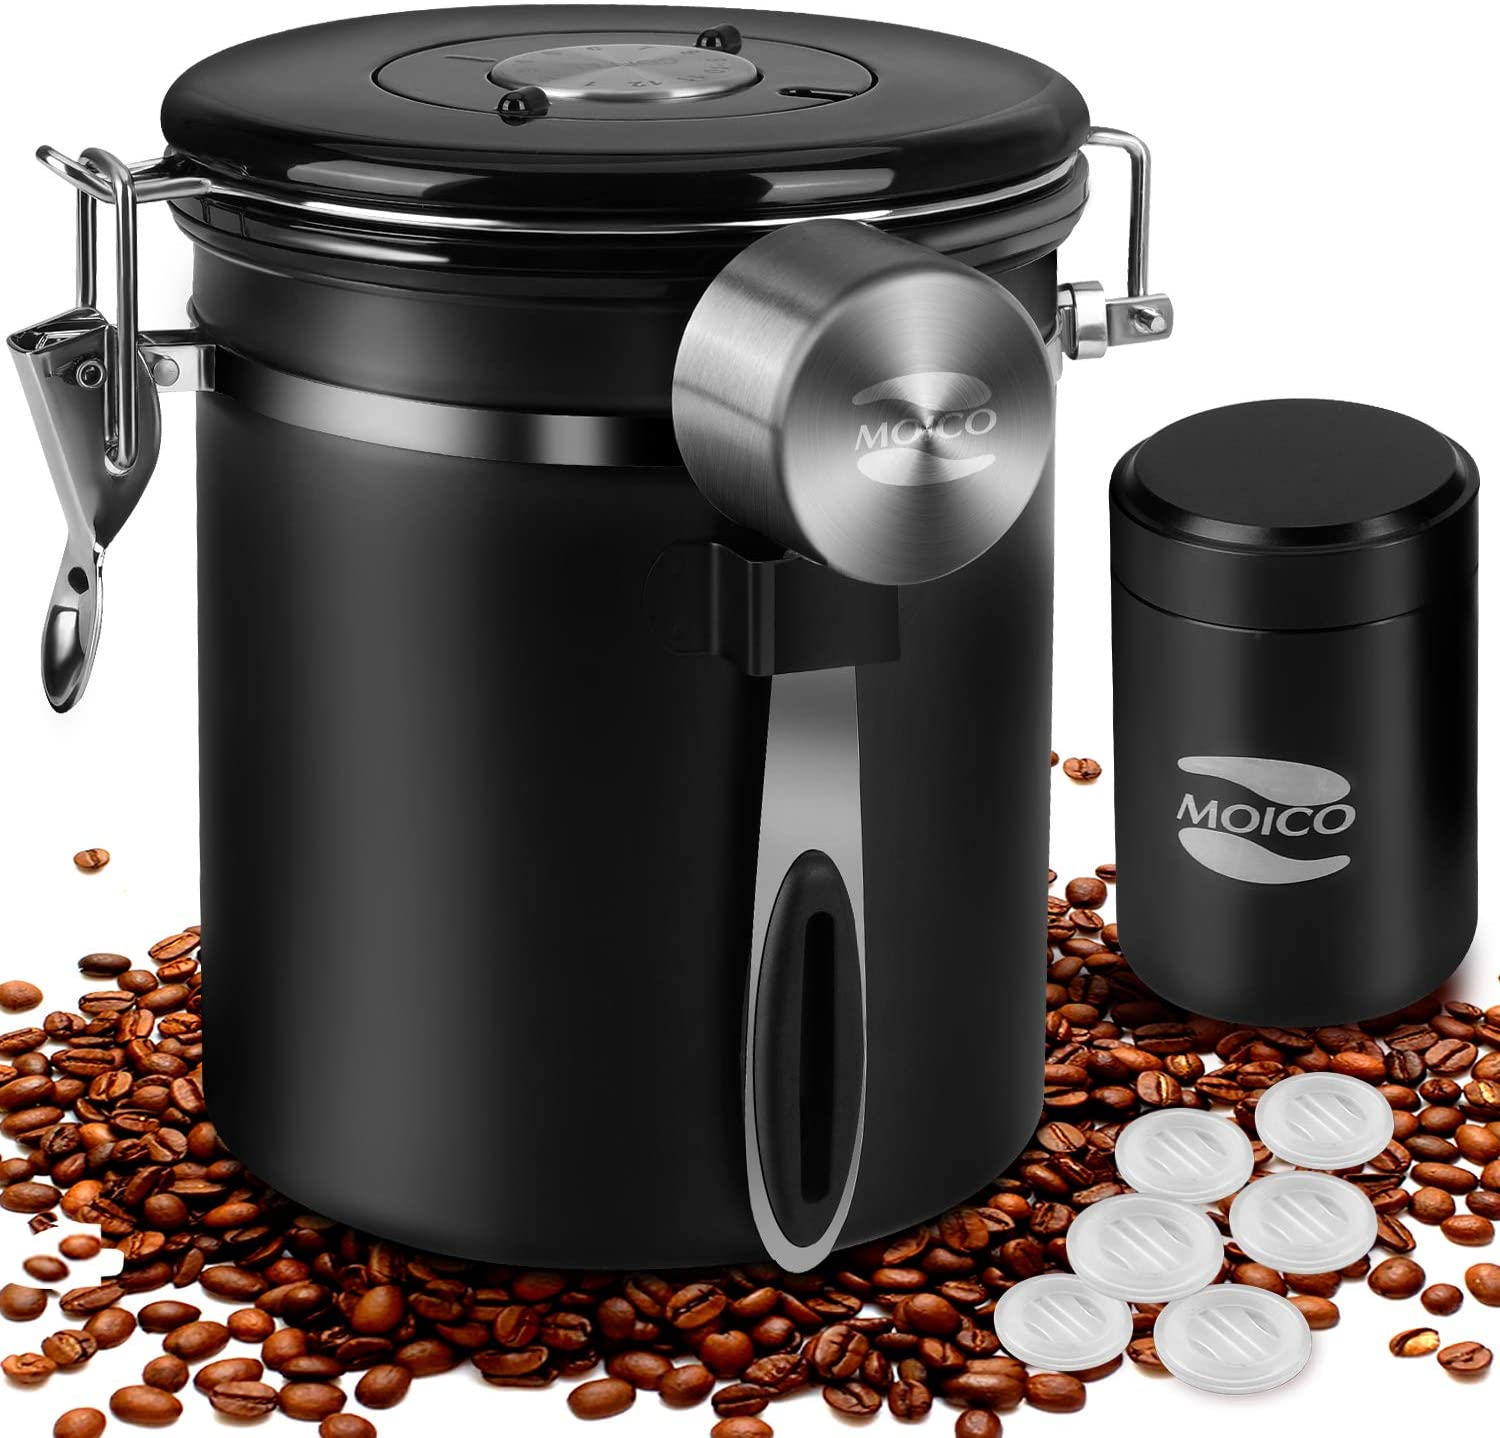 Coffee Container MOICO Coffee Stainless Steel Container-One Way Co2 Valve Airtight Coffee Canister with Coffee Scoop & Travel Jar(Black,16oz+0.65oz)